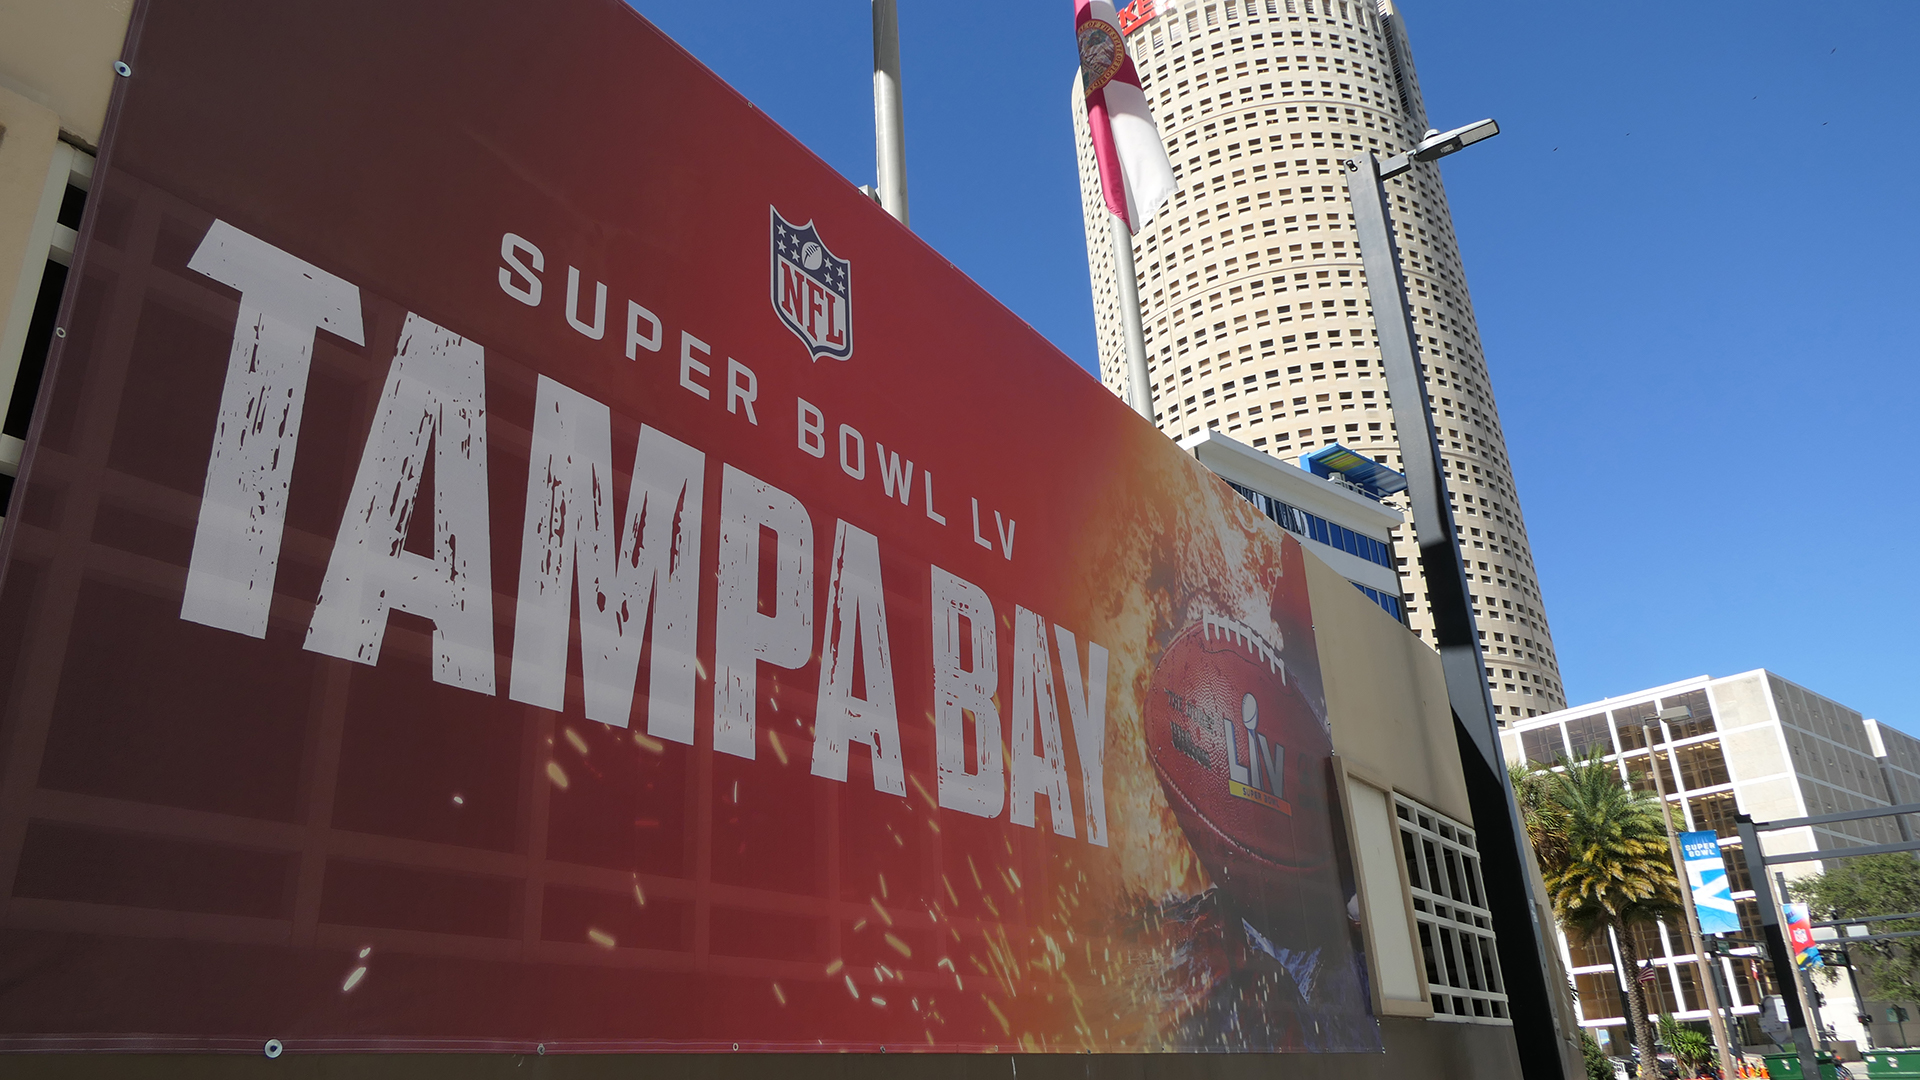 Super Bowl Lv Countdown What S Happening In Tampa On Friday Wfla